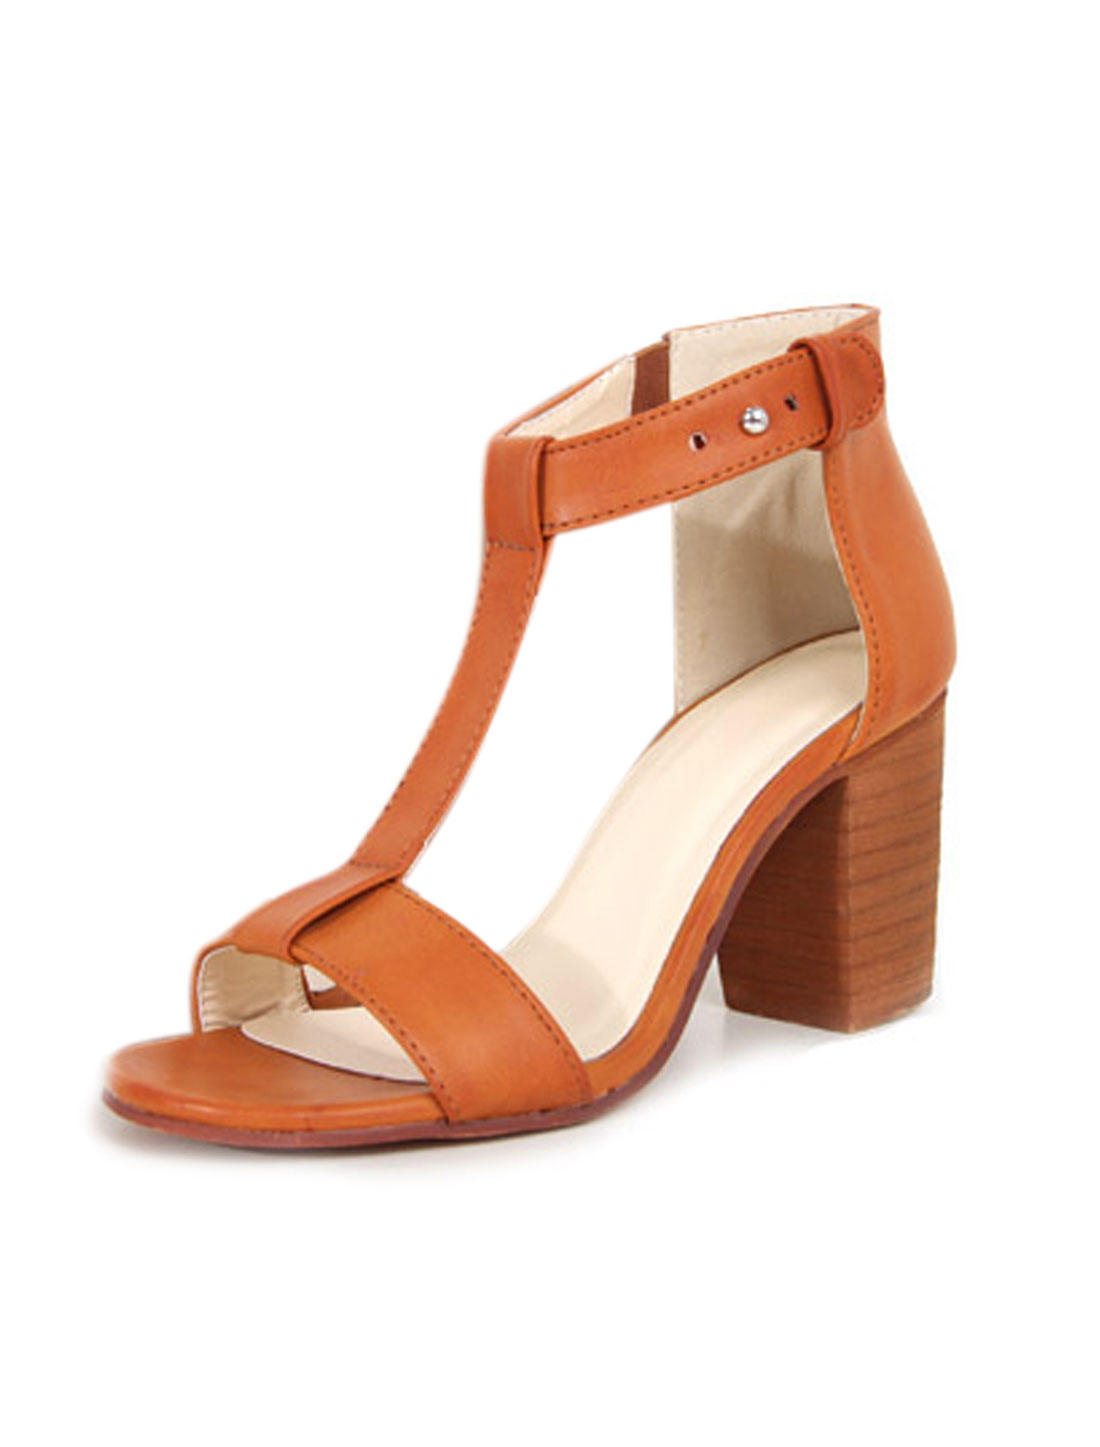 Lady Stacked High Heels Button Stud Closed T-strap Sandals Brown US 7